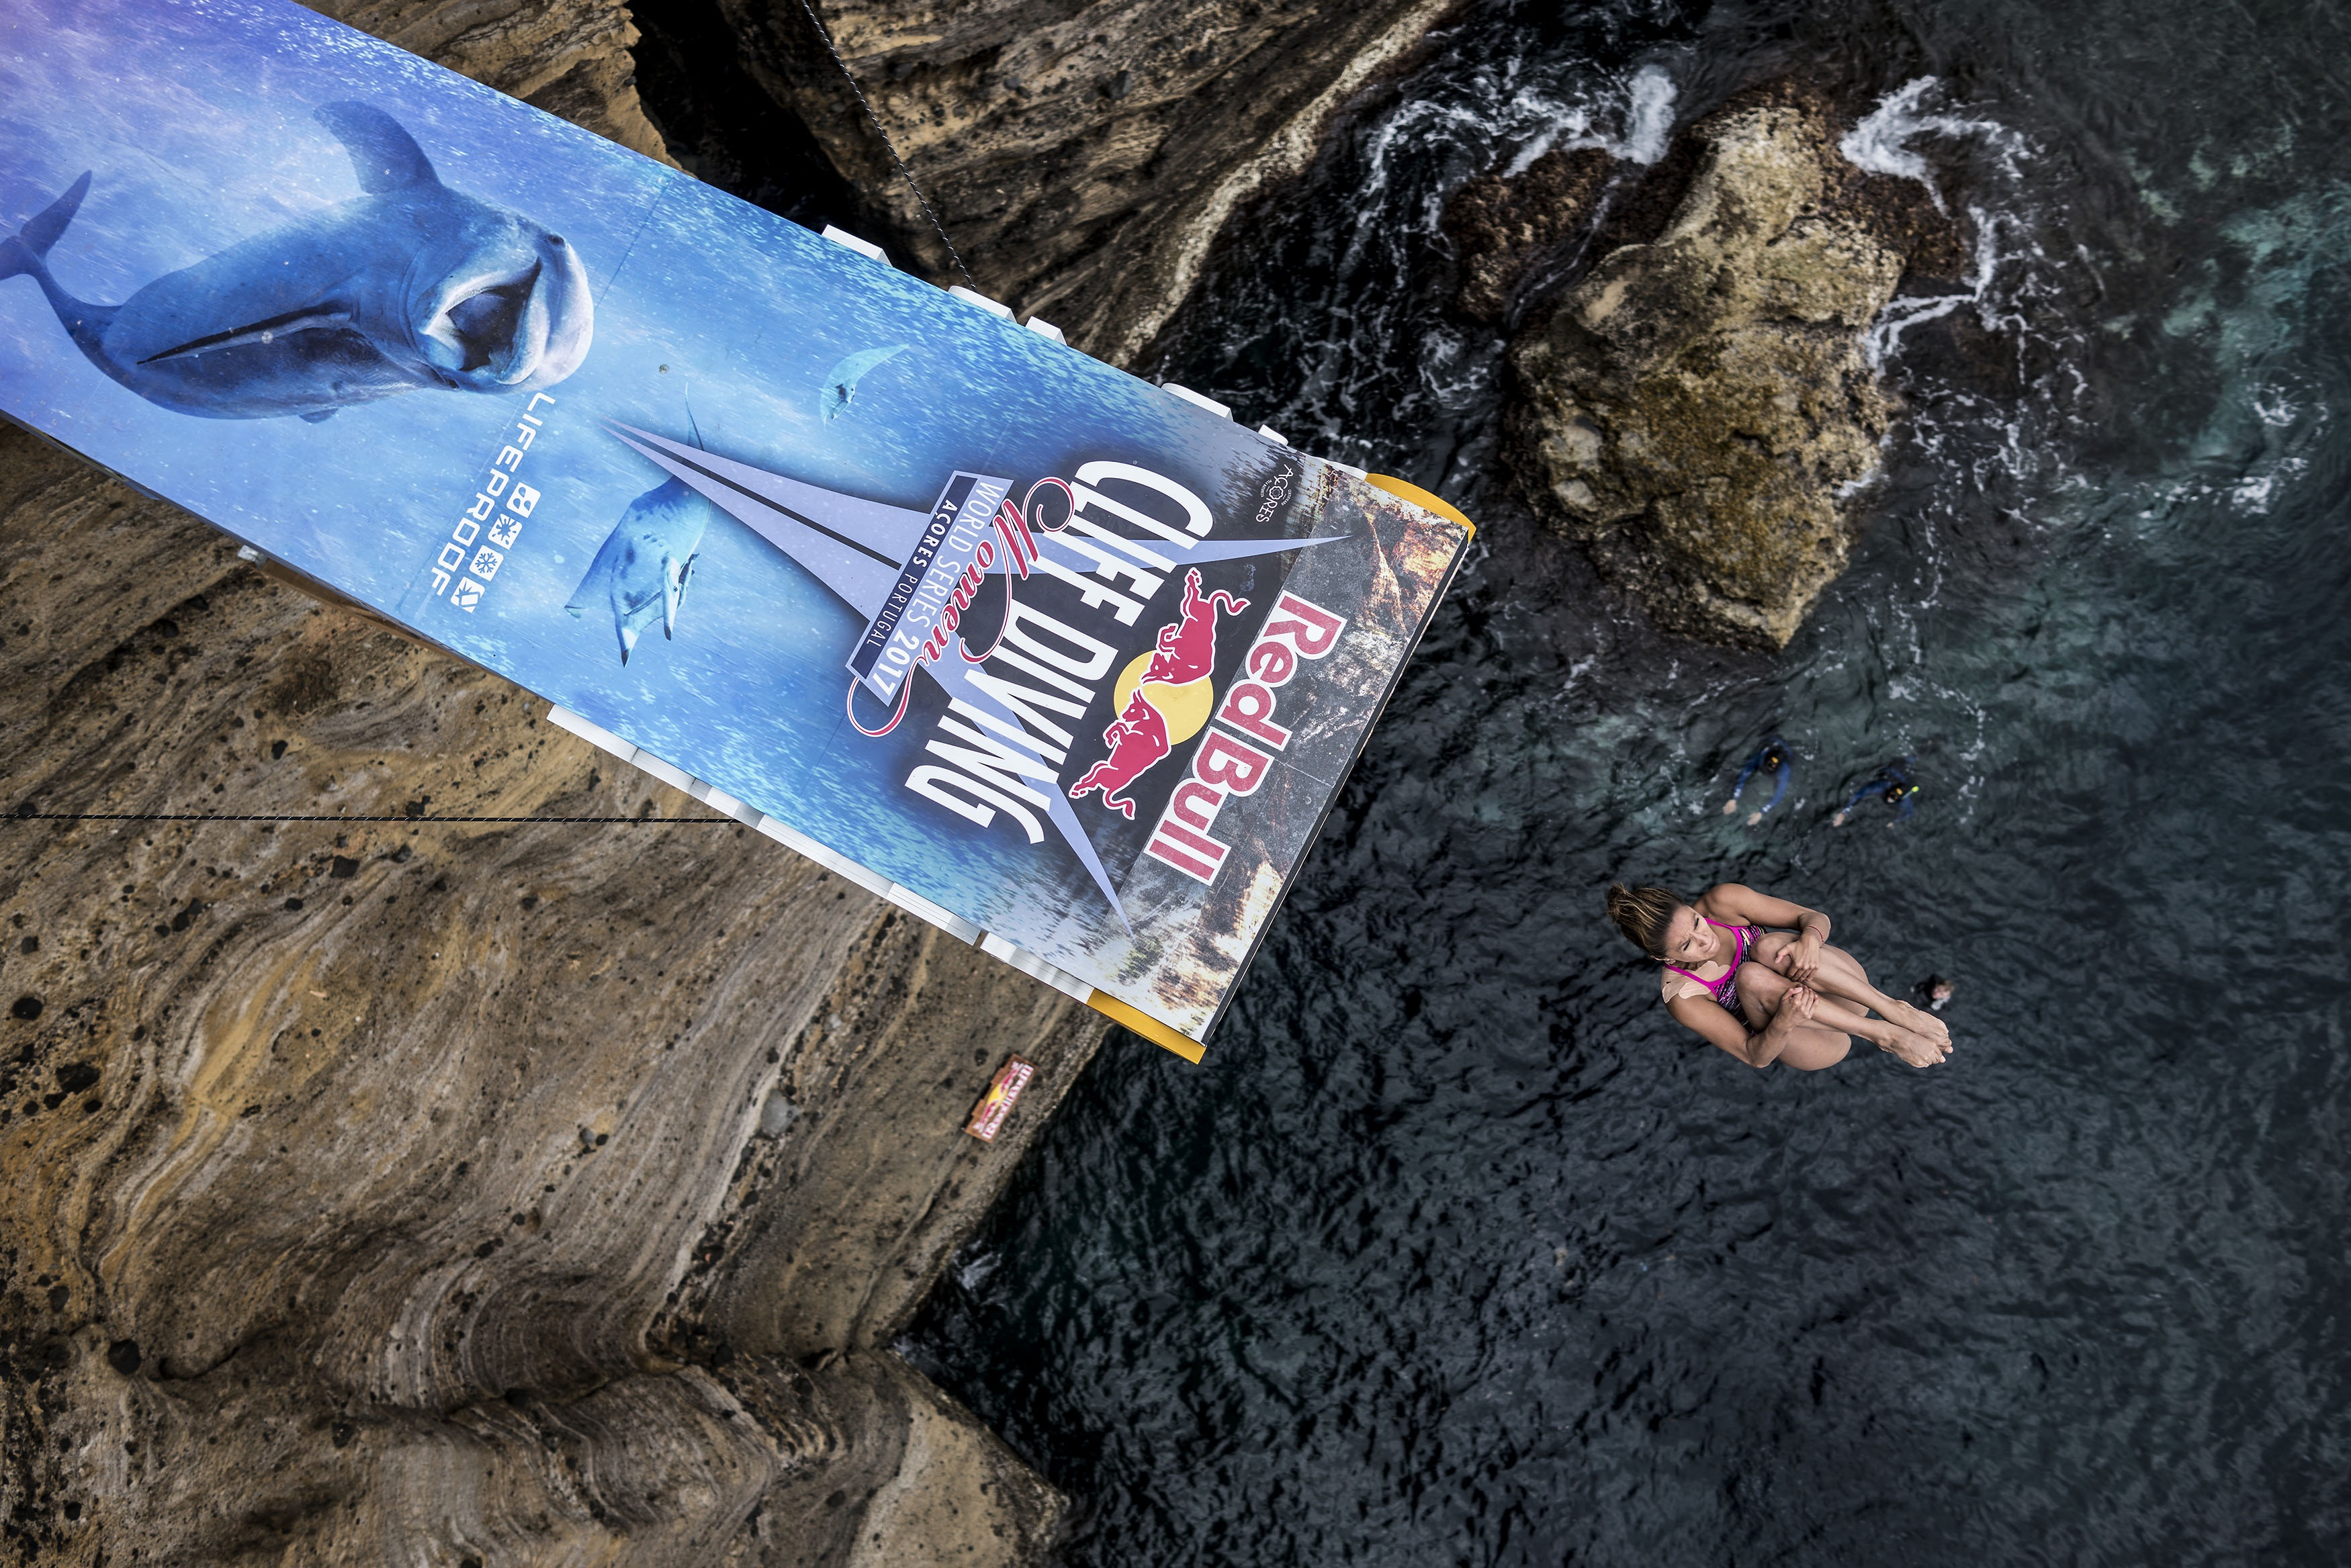 This Mexican Woman's Impressive 70-Foot Cliff Dives Won Her a Gold Medal